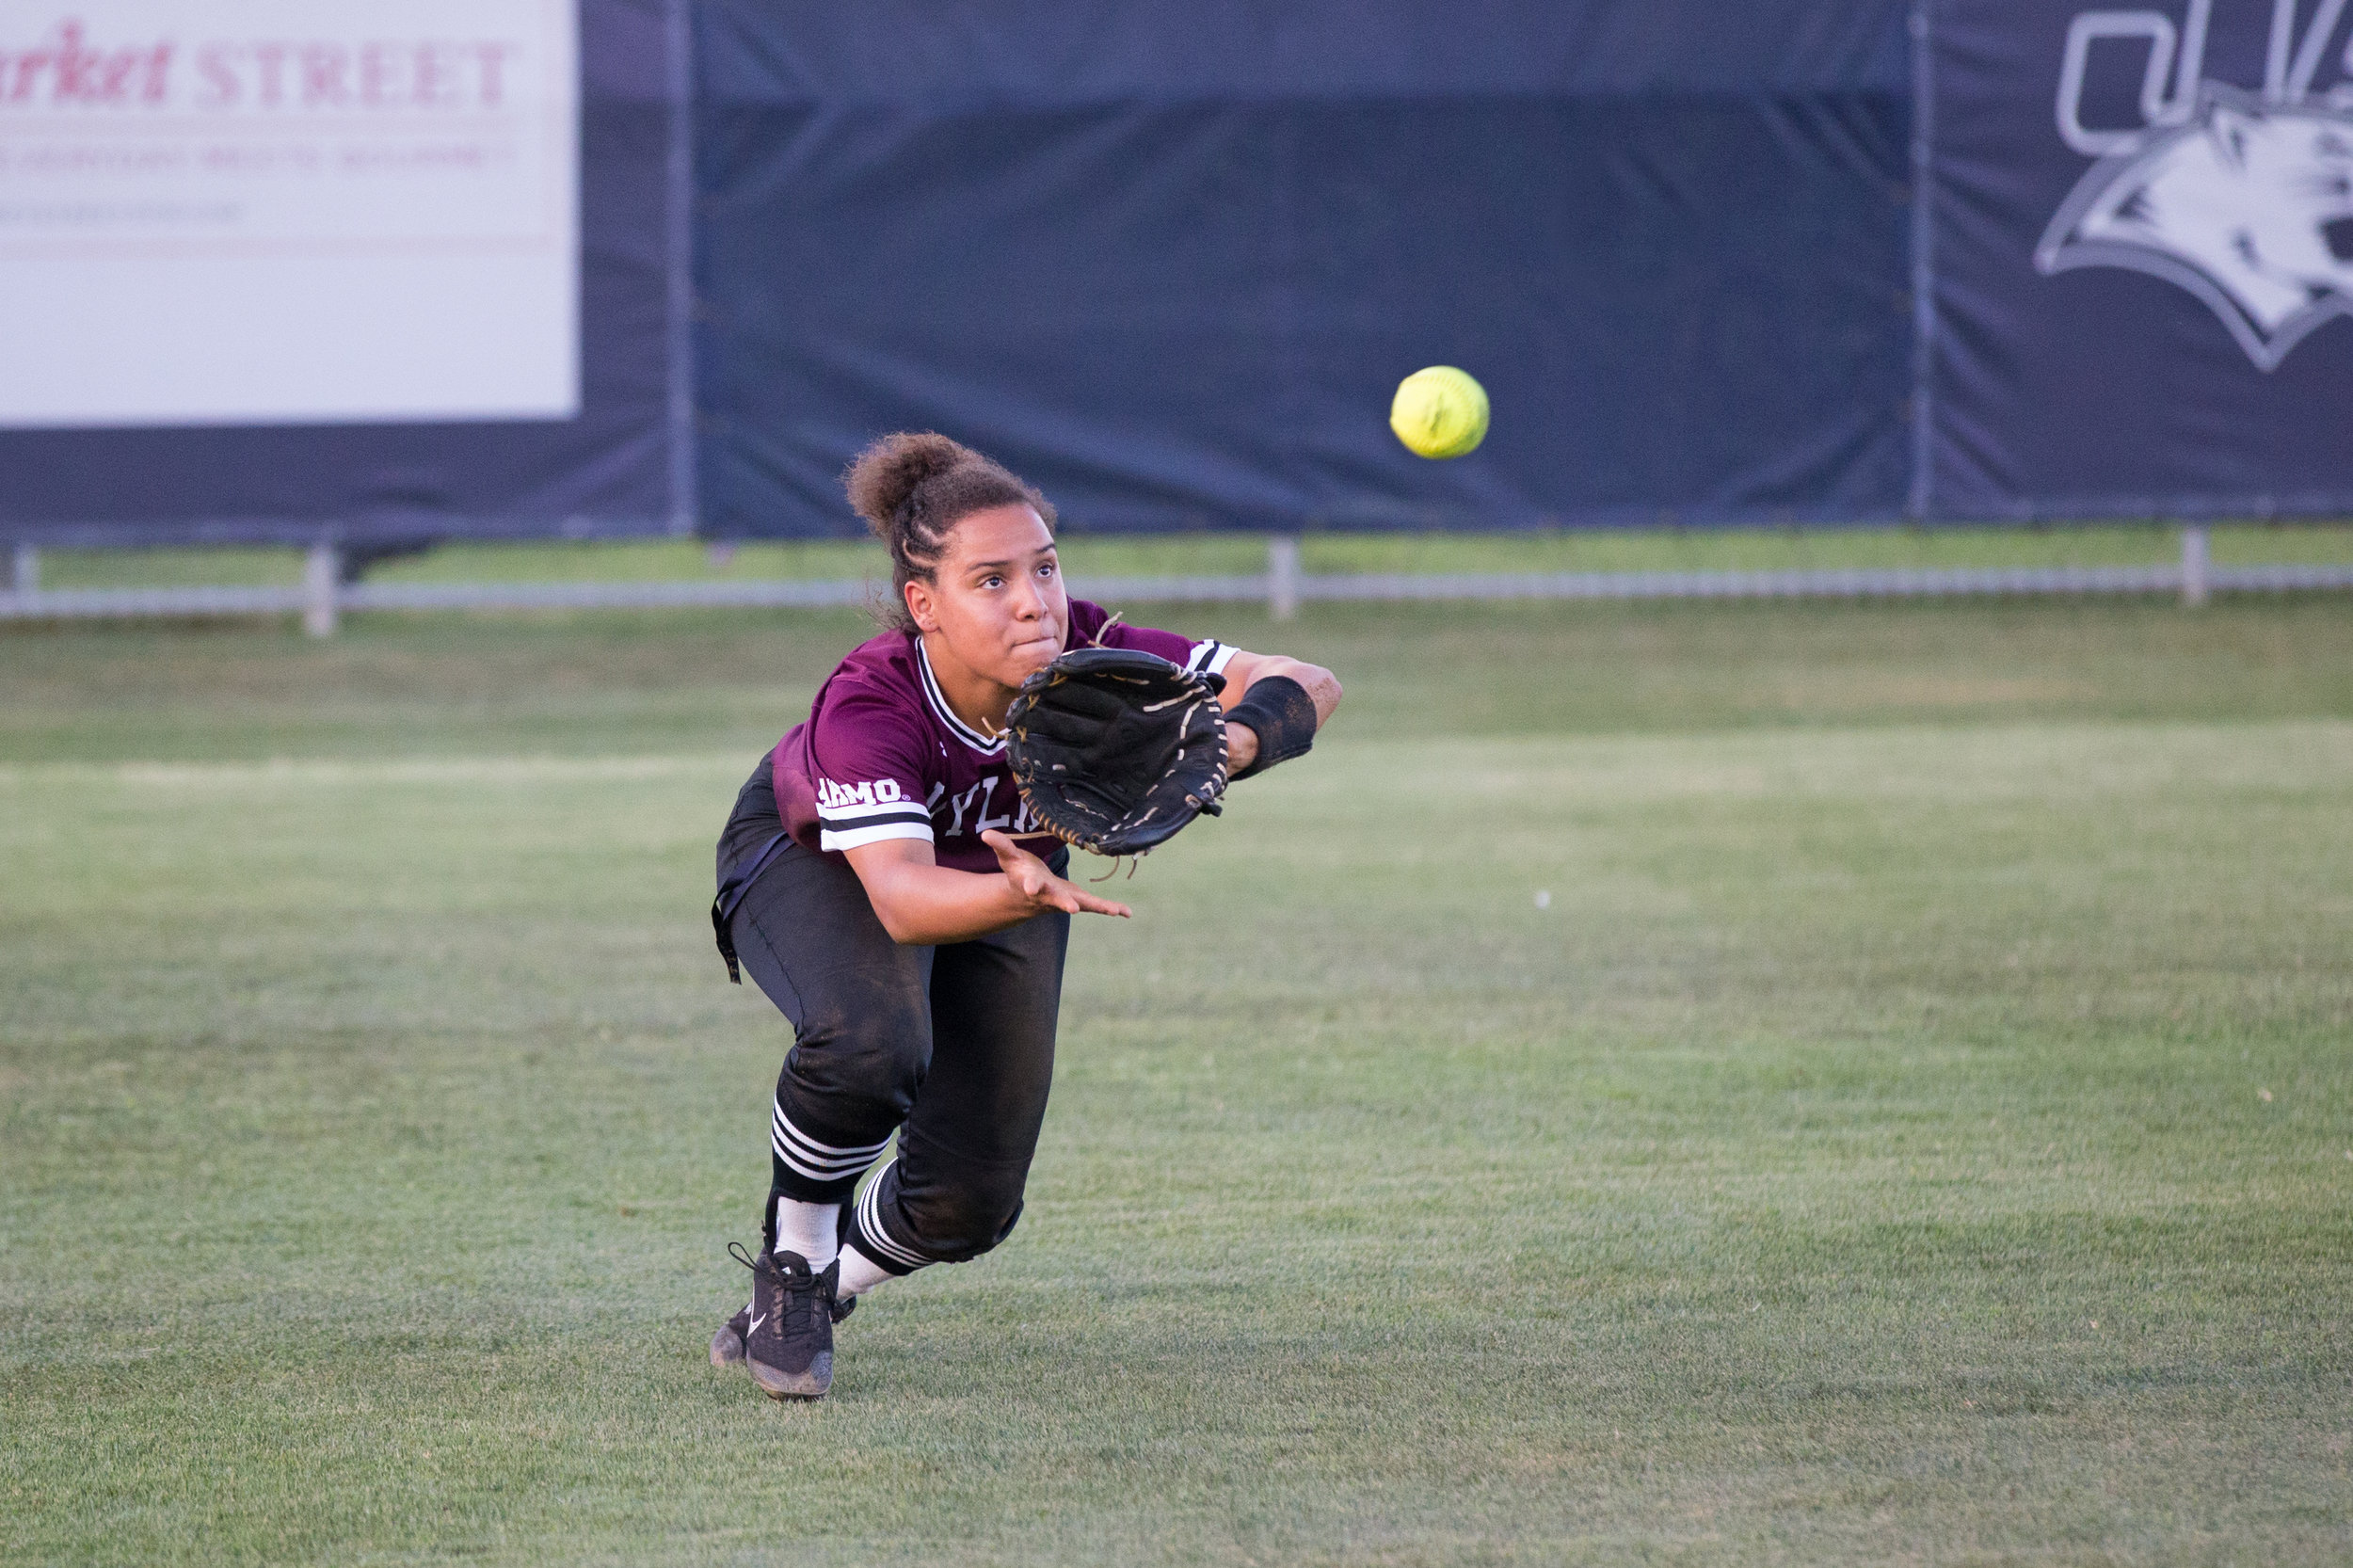 5_18 Wylie Softball-146.jpg